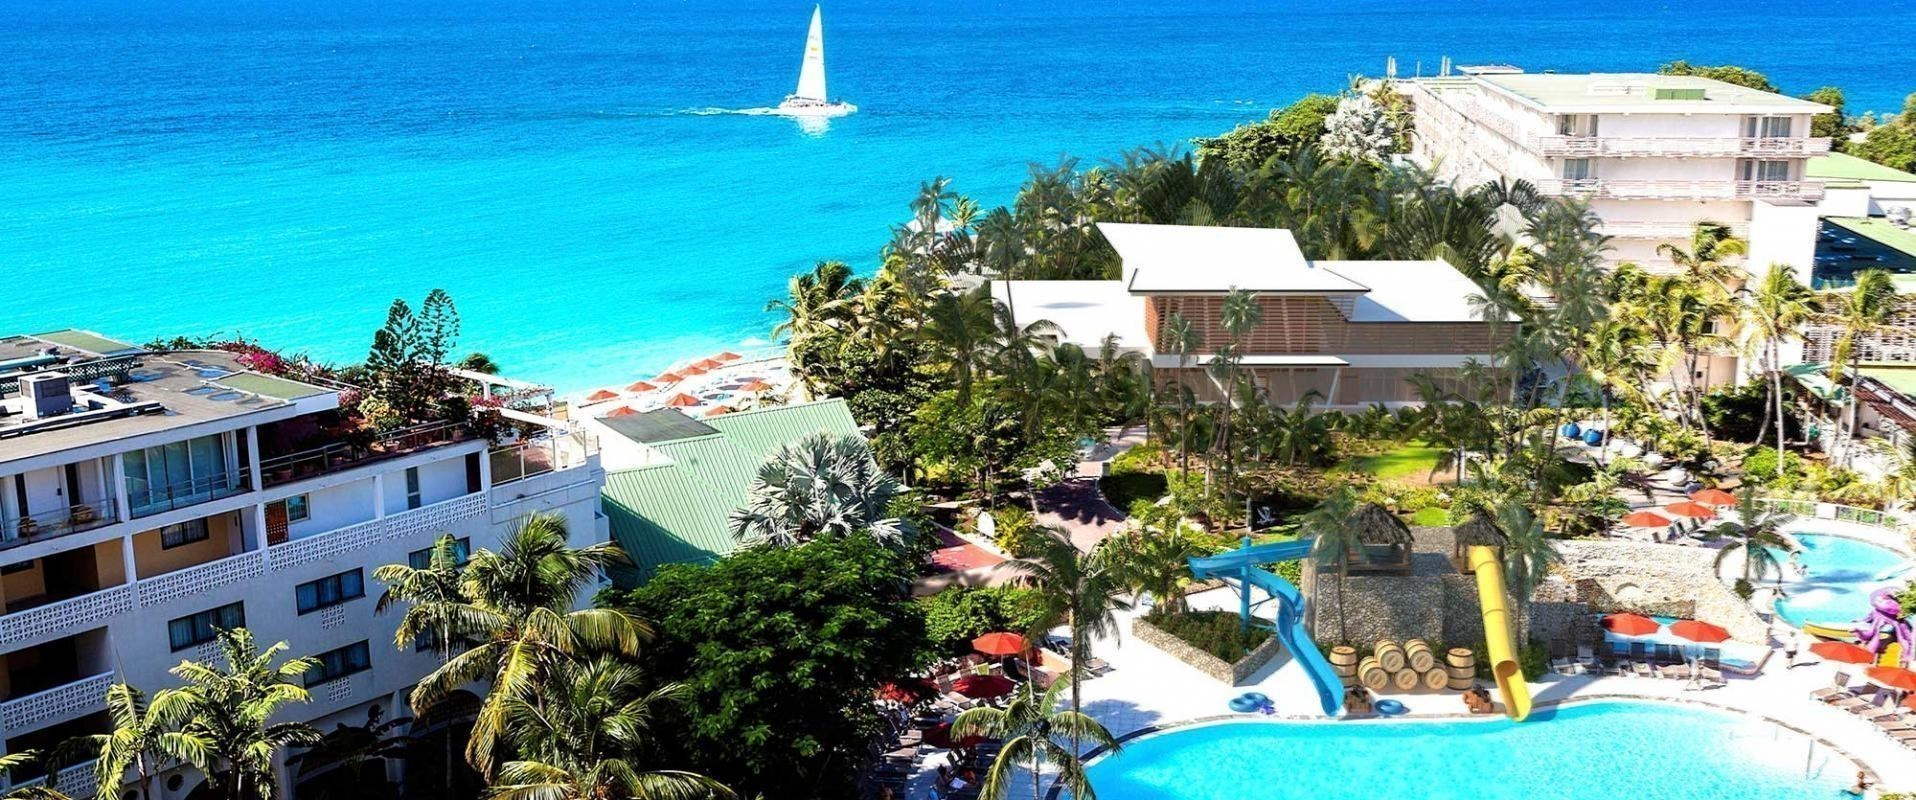 Allinclusive Stay at Sonesta Maho Beach Resort or Sonesta